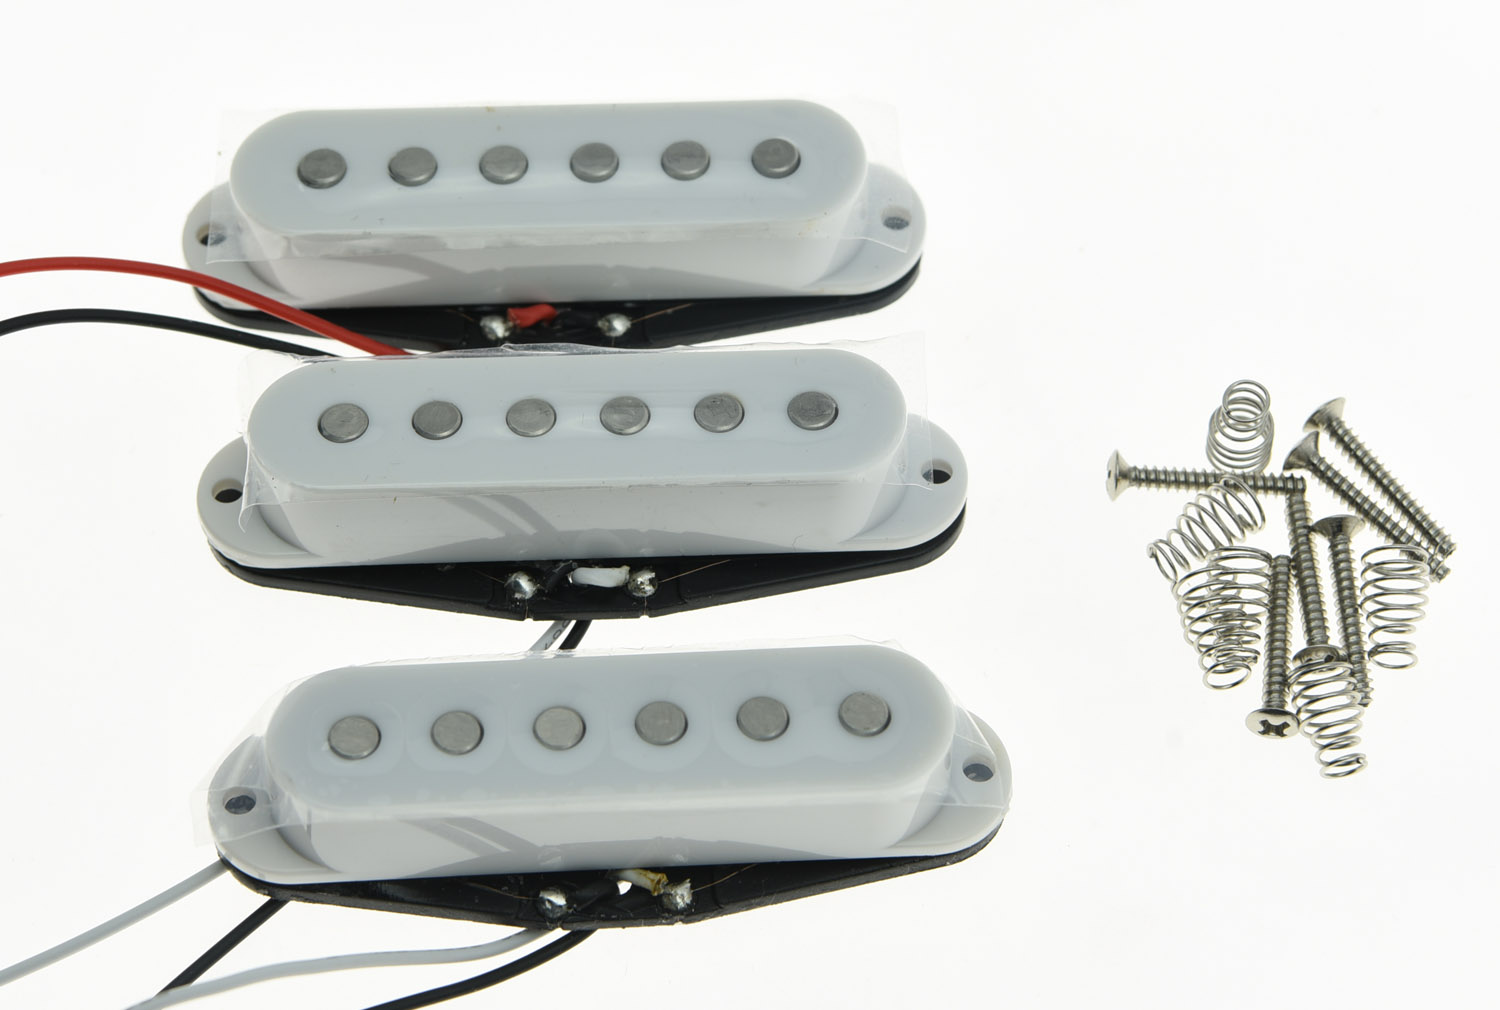 KAISH 3x N/M/B White Alnico 5 Single Coil Pickups High Output Sound Strat SSS Pickup vintage voice single coil pickups fits for stratocaster ceramic bobbin alnico single coil guitar pickup staggered pole top